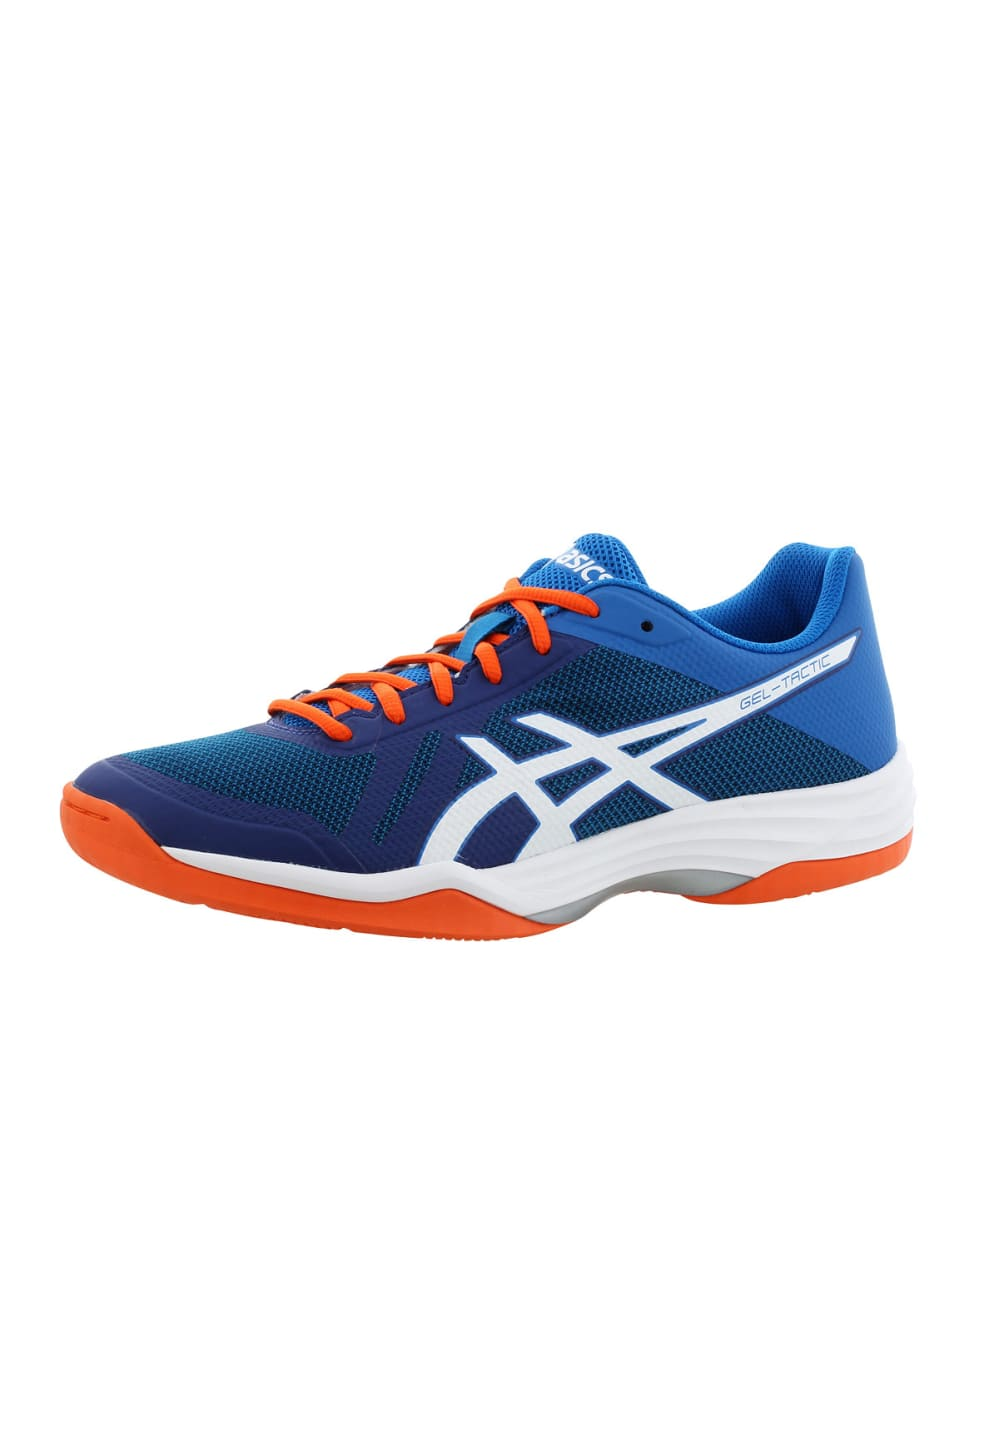 1a82fdf16b38a ASICS GEL-Tactic Blue - Volleyball shoes for Men - Blue